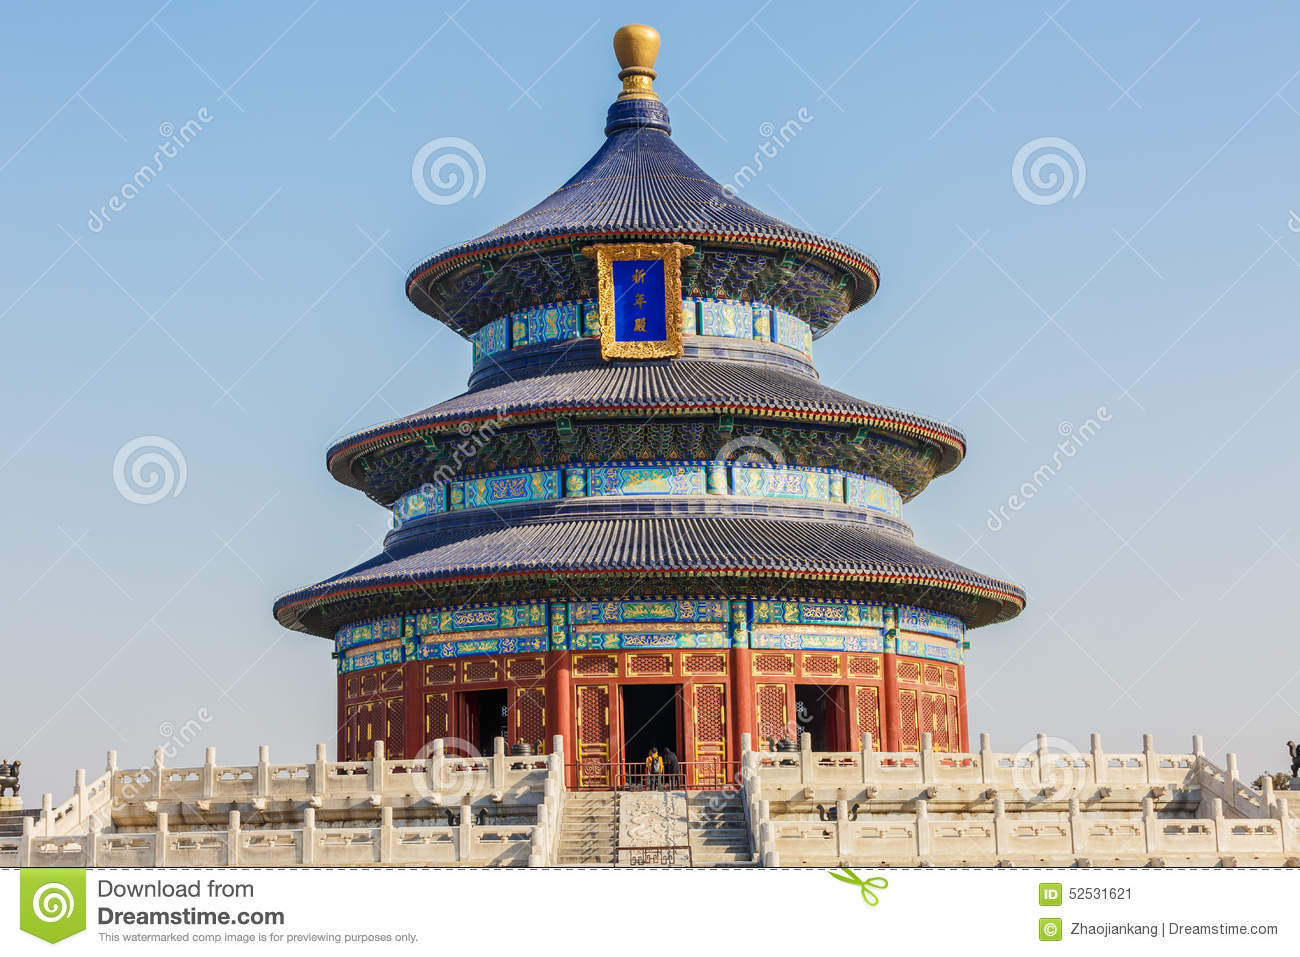 Famous Ancient Architecture Of The Temple Of Heaven In Beijing, China